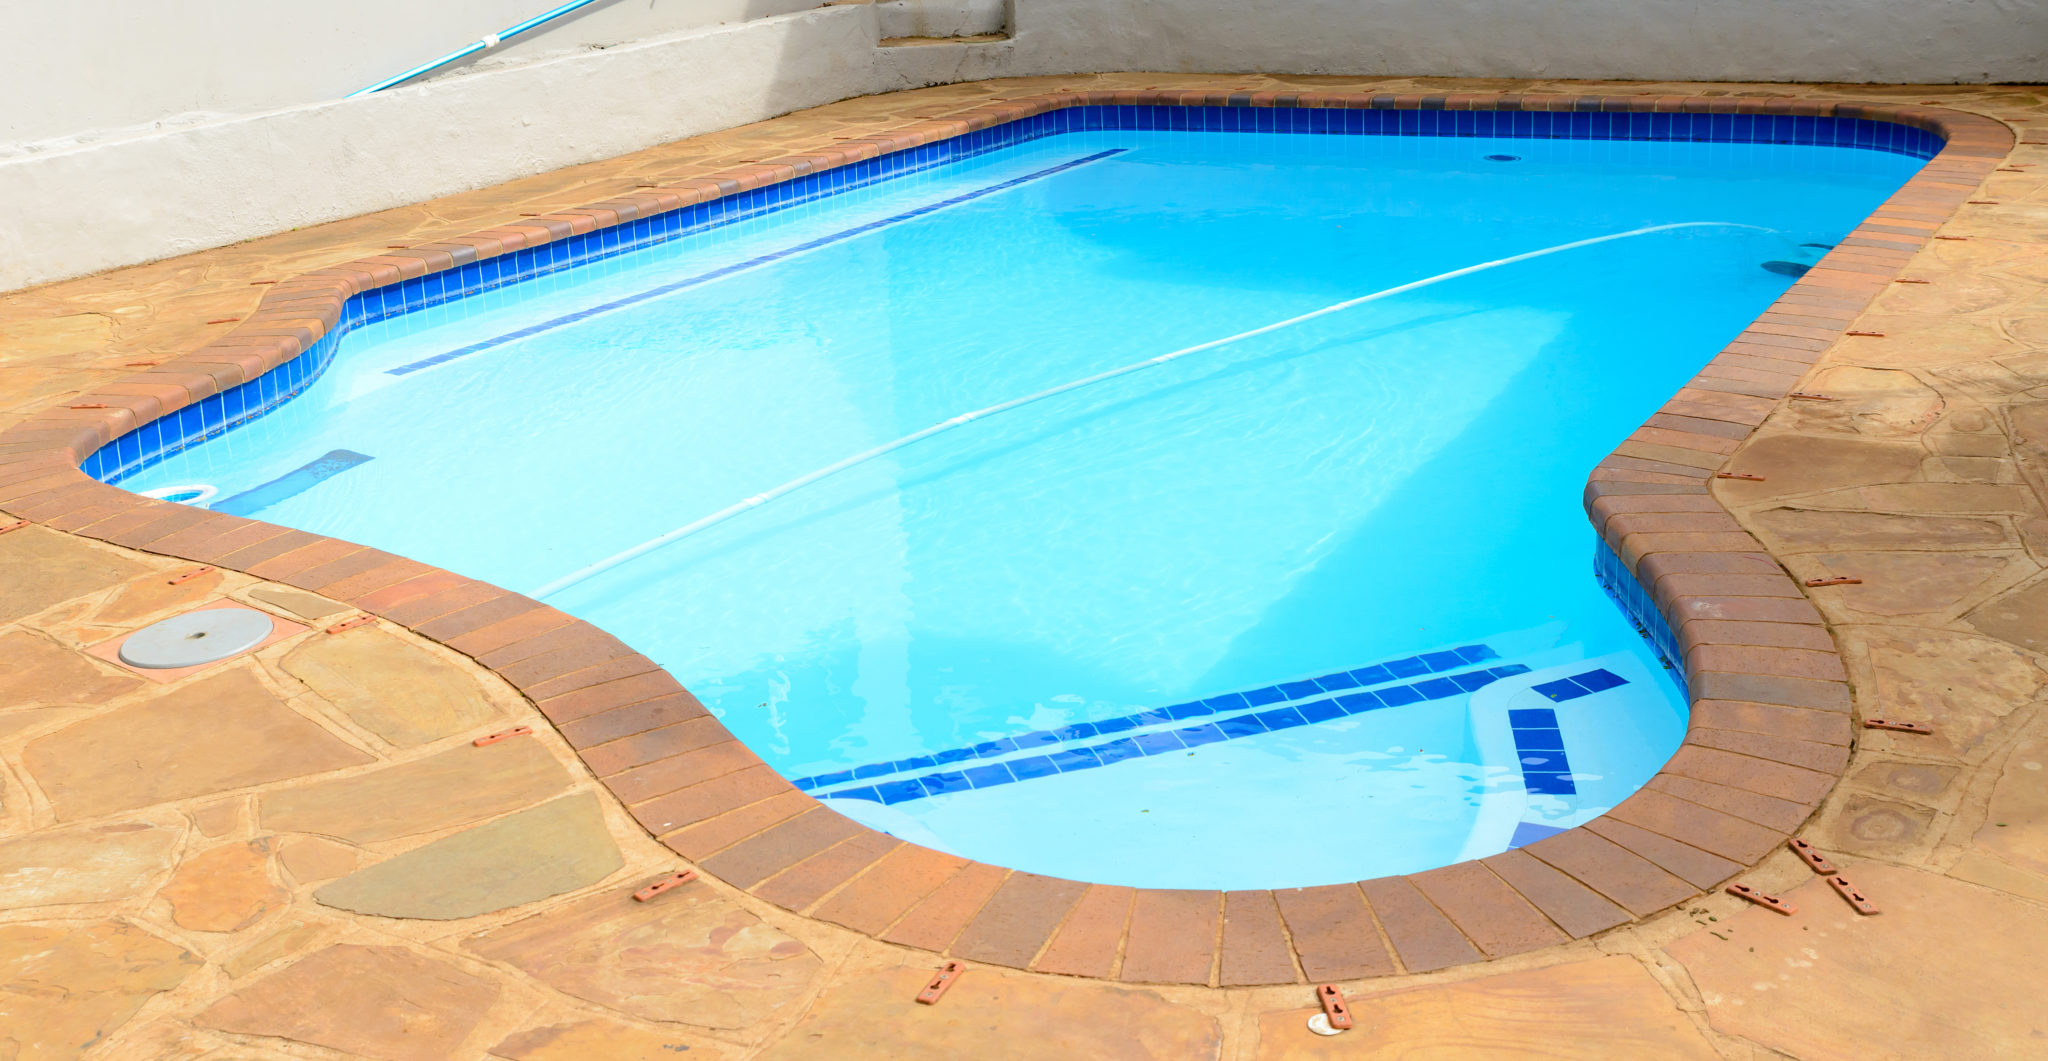 'The Pool' - Ideal for those sultry Durban summer days/evenings